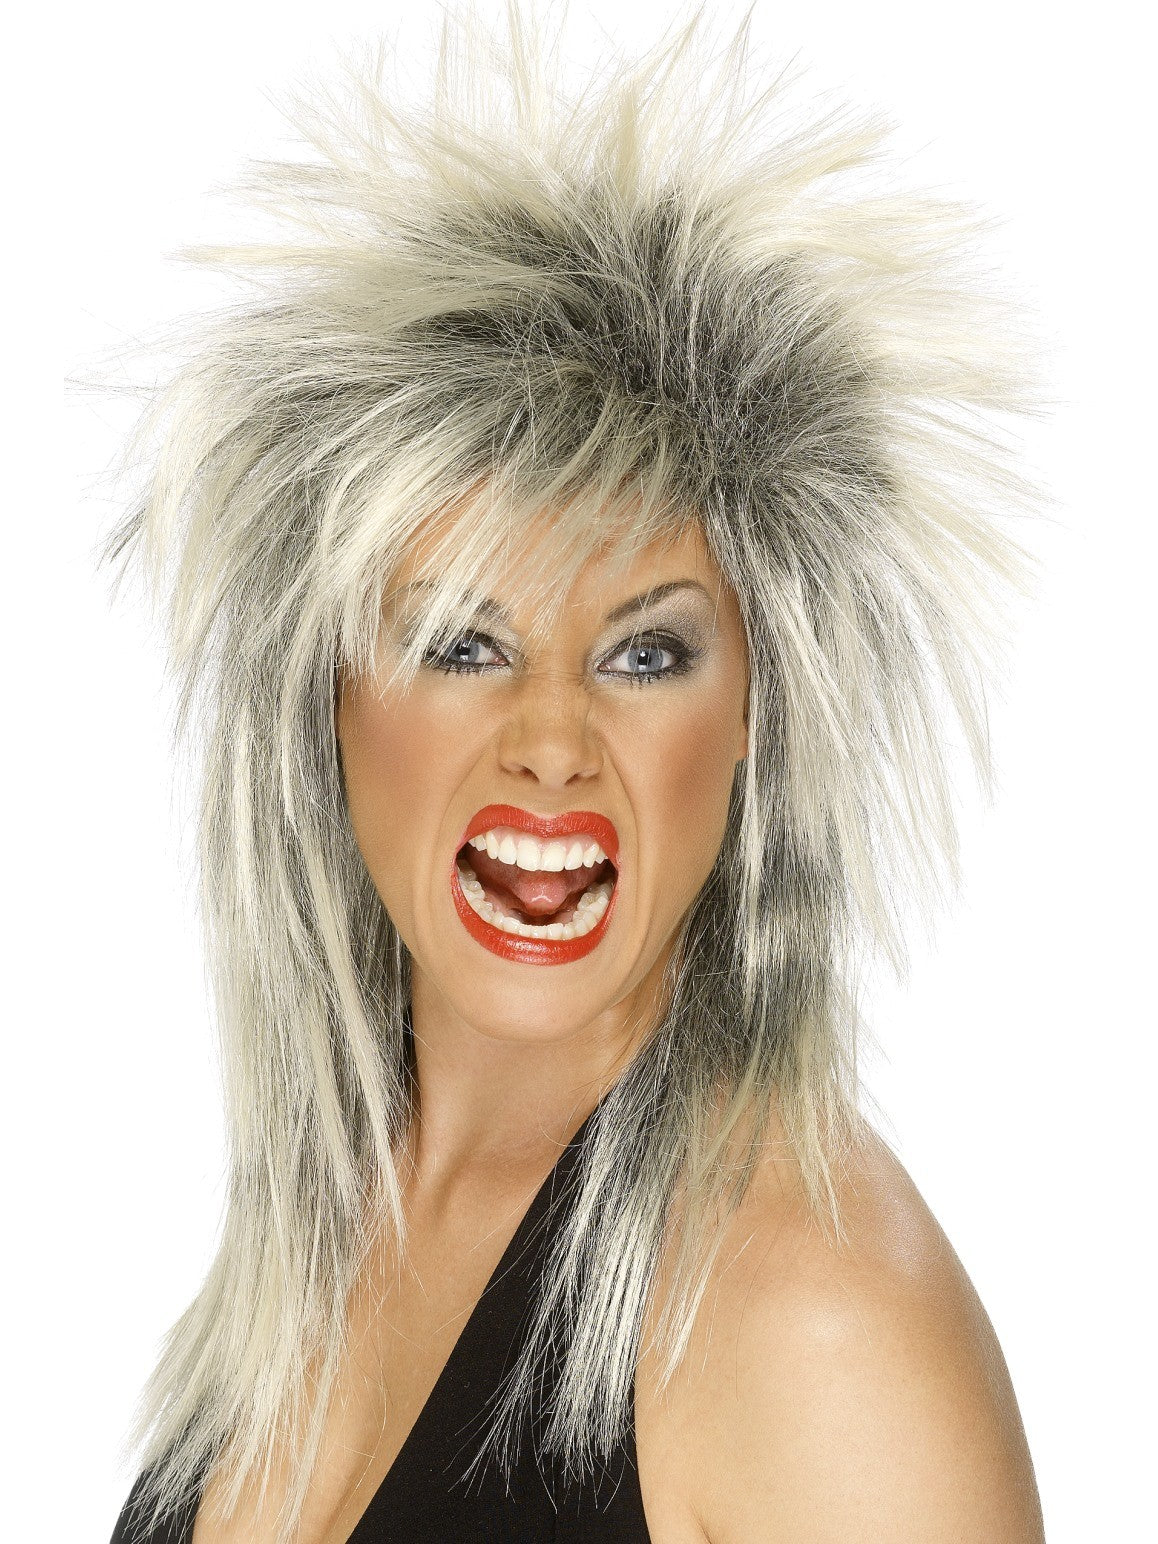 Rock Diva Tina Turner Blonde & Black Long Mullet Women's Costume Wig